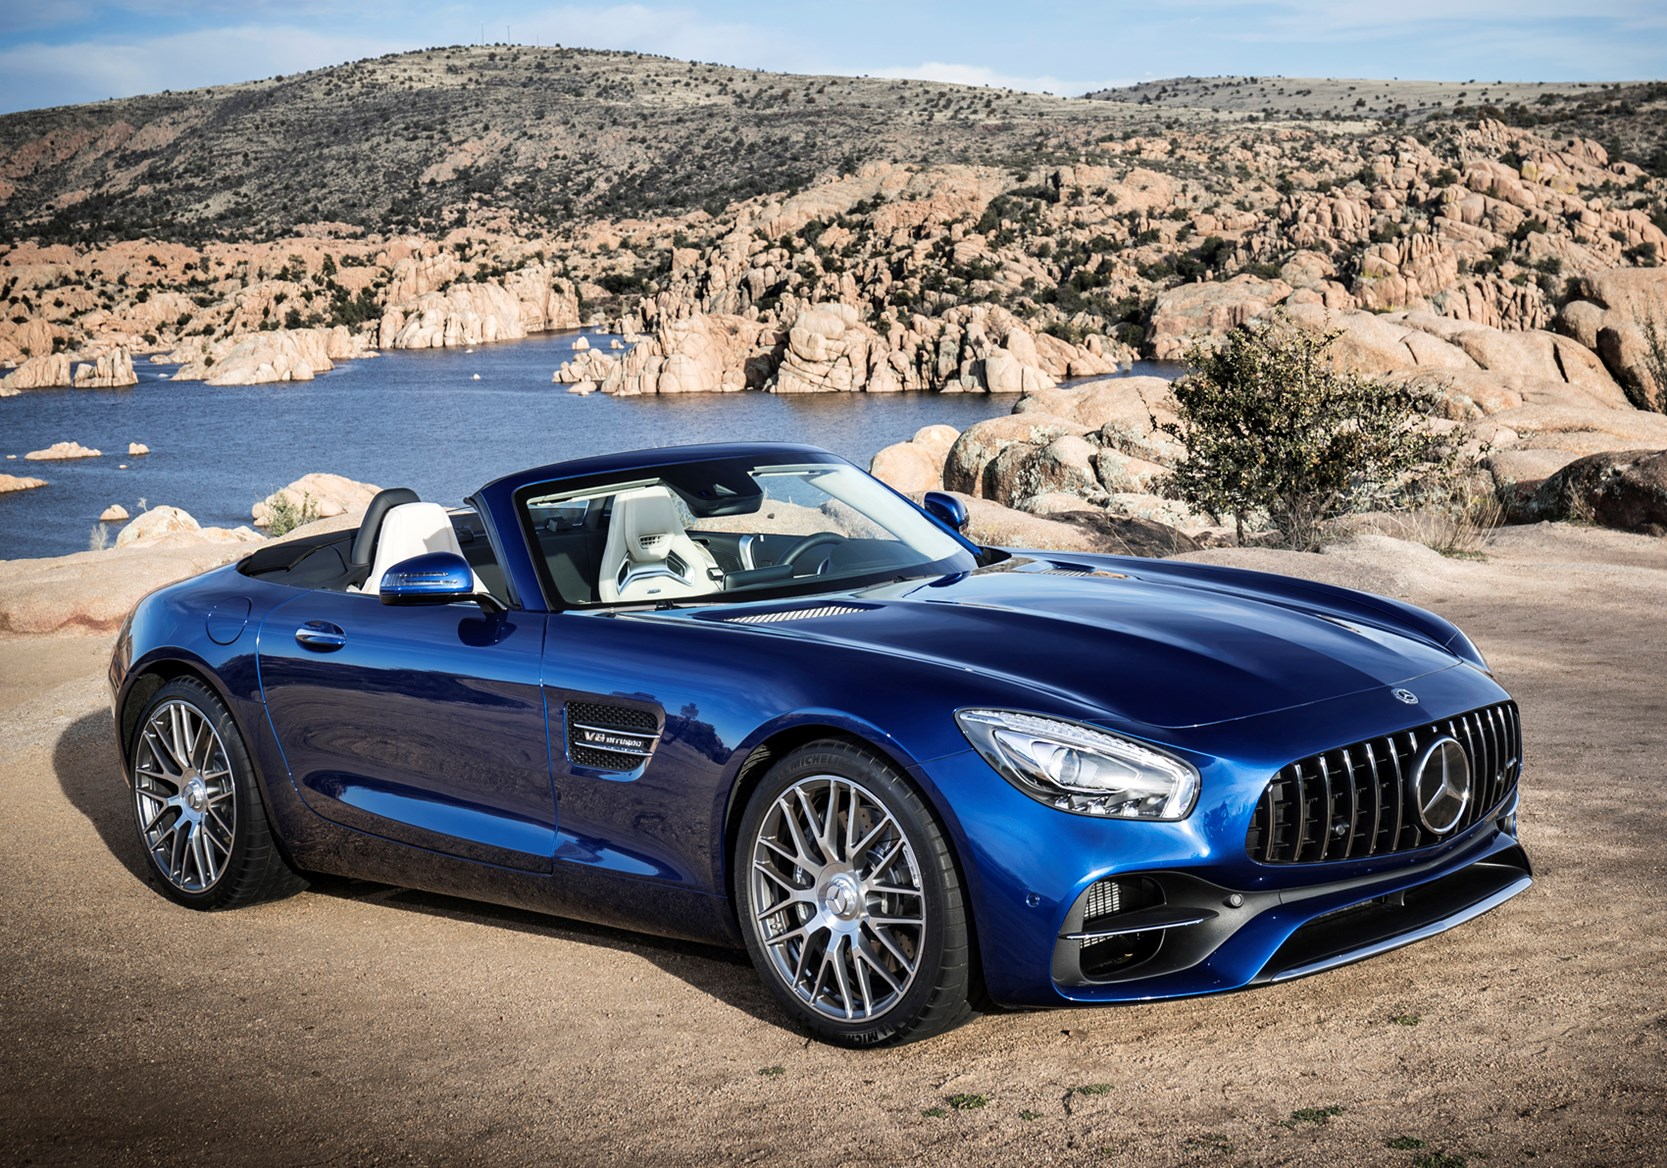 Mercedes benz amg gt roadster review 2017 parkers for How much is a mercedes benz 2017